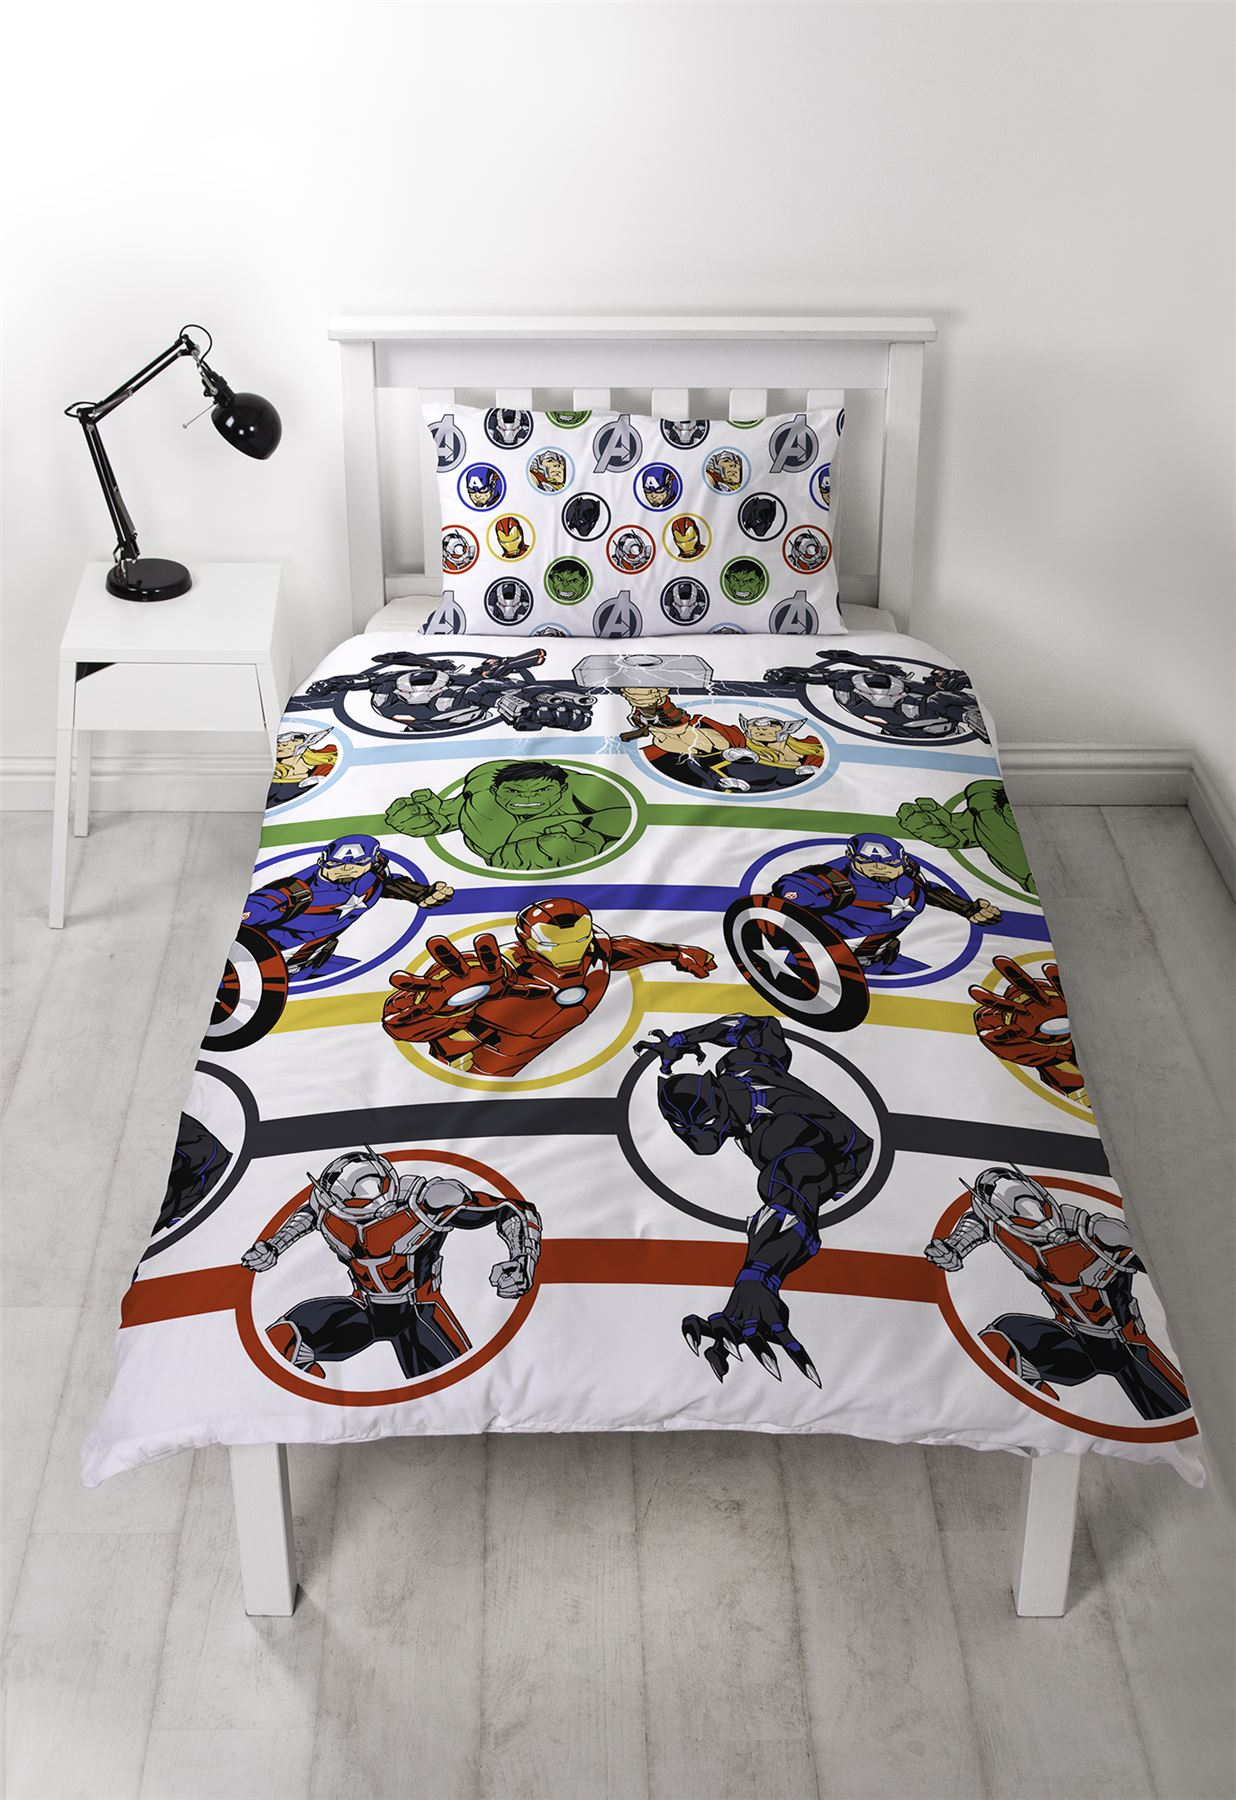 Official-Marvel-Comics-Avengers-Licensed-Duvet-Covers-Single-Double thumbnail 16